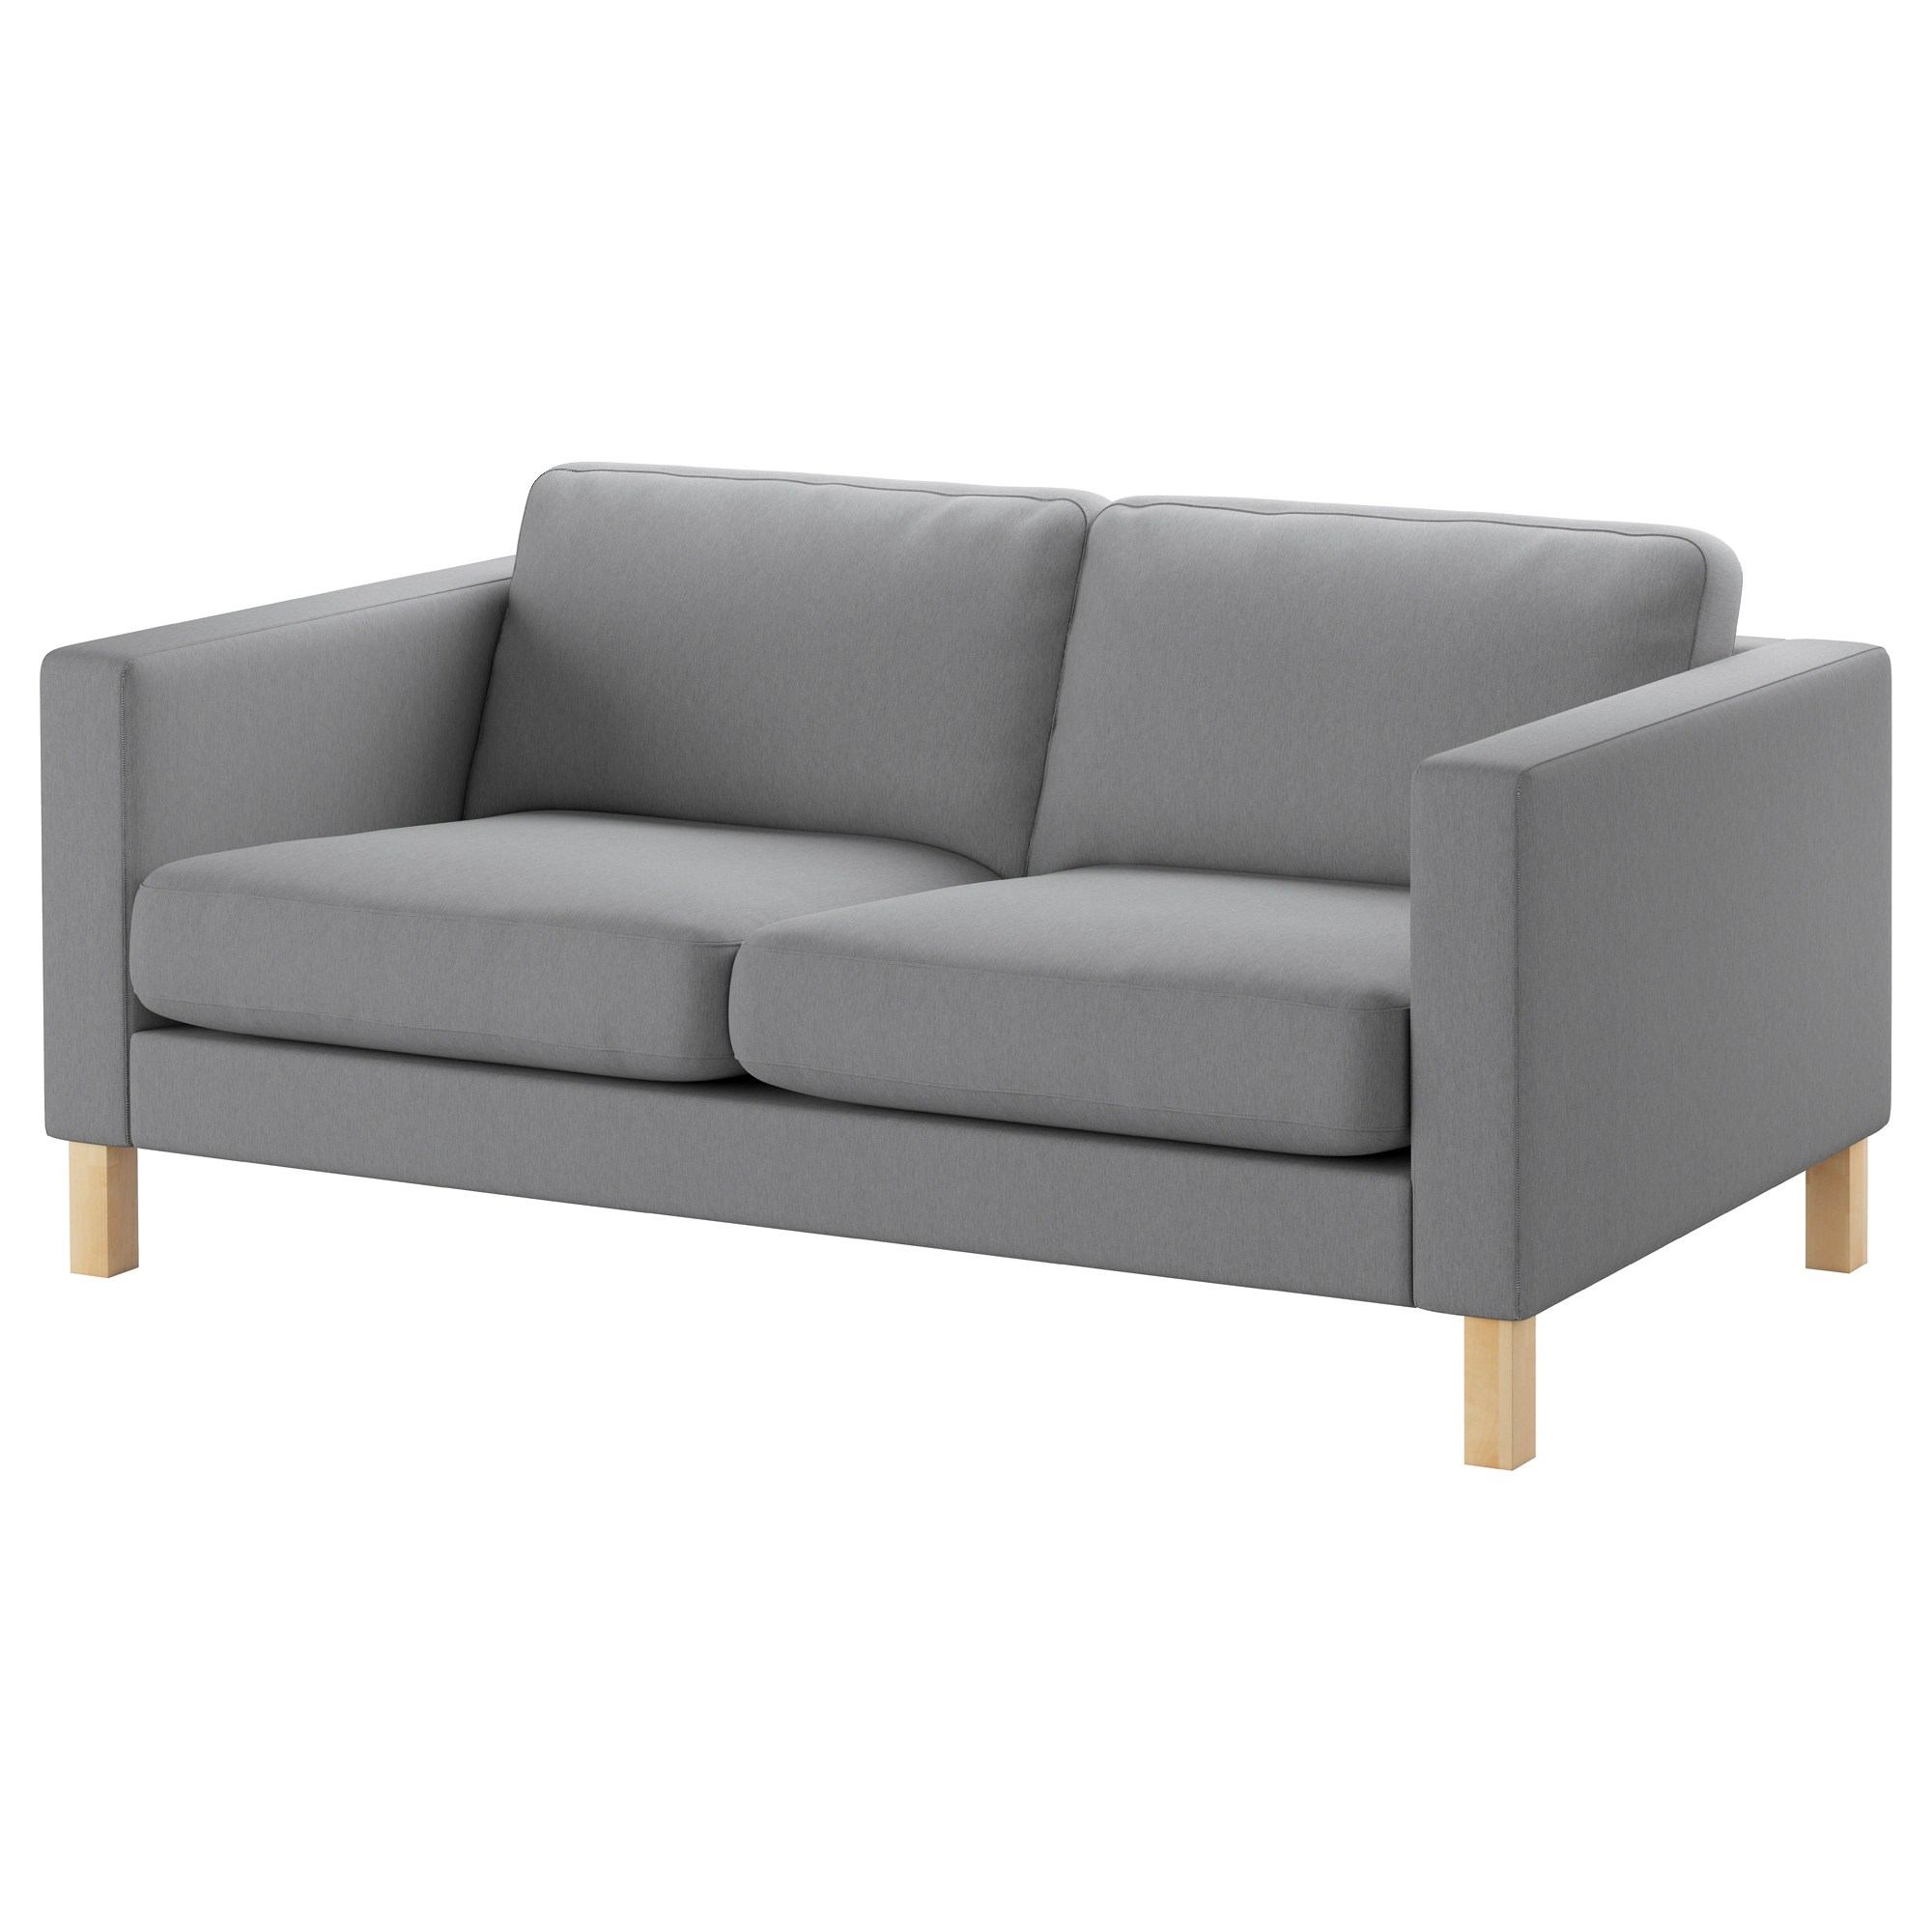 Ikea Sofa Säter Karlstad Two Seat Sofa Knisa Light Grey